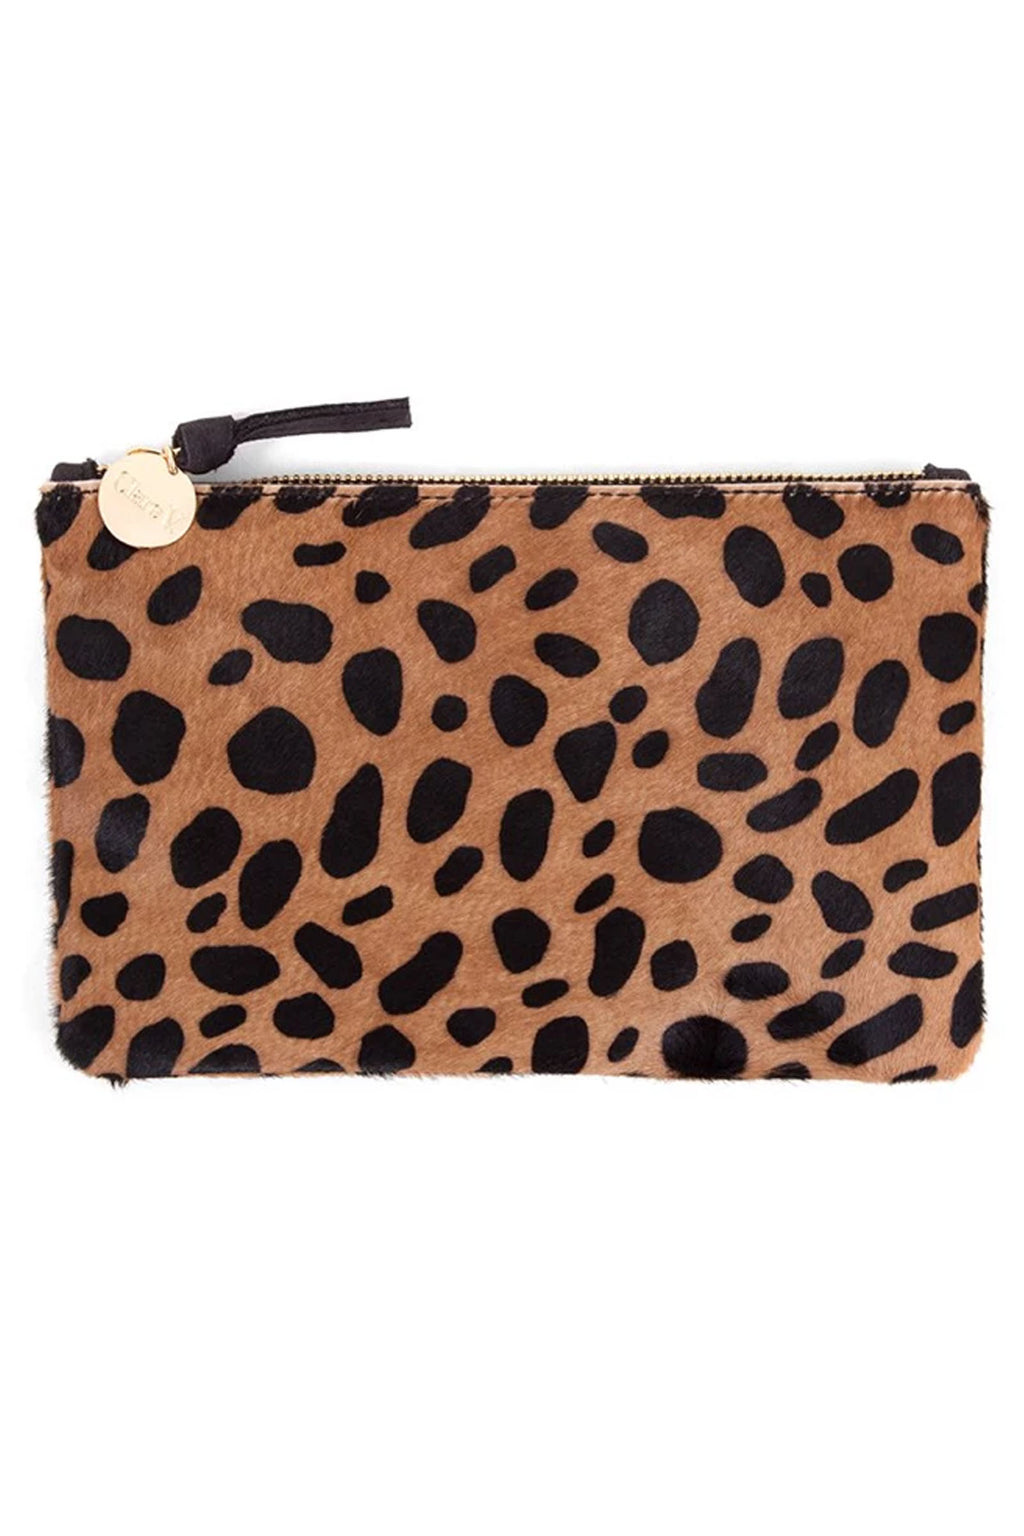 Clare Vivier Hair-On Wallet in Tan Leopard